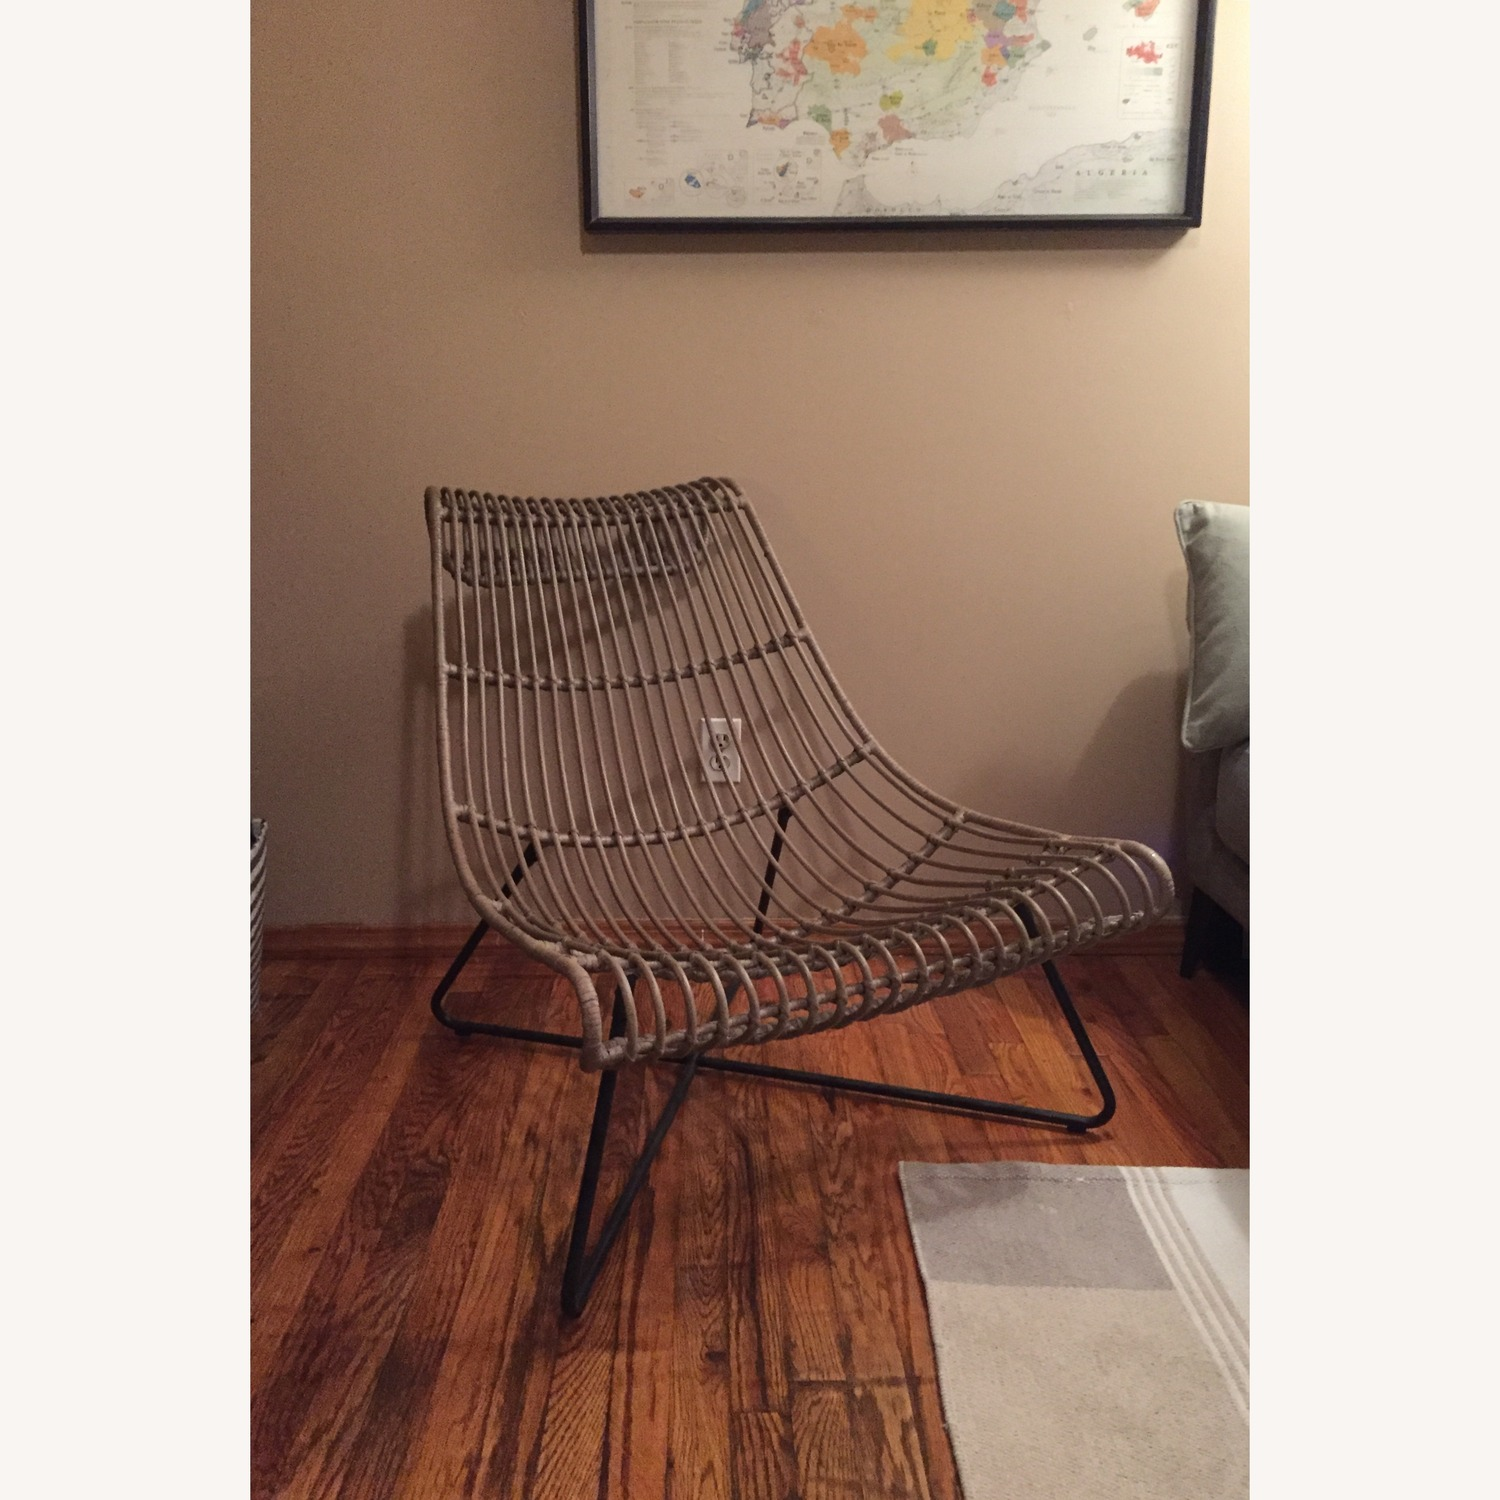 Grey/ Taupe Rattan Lounger Chair - image-1